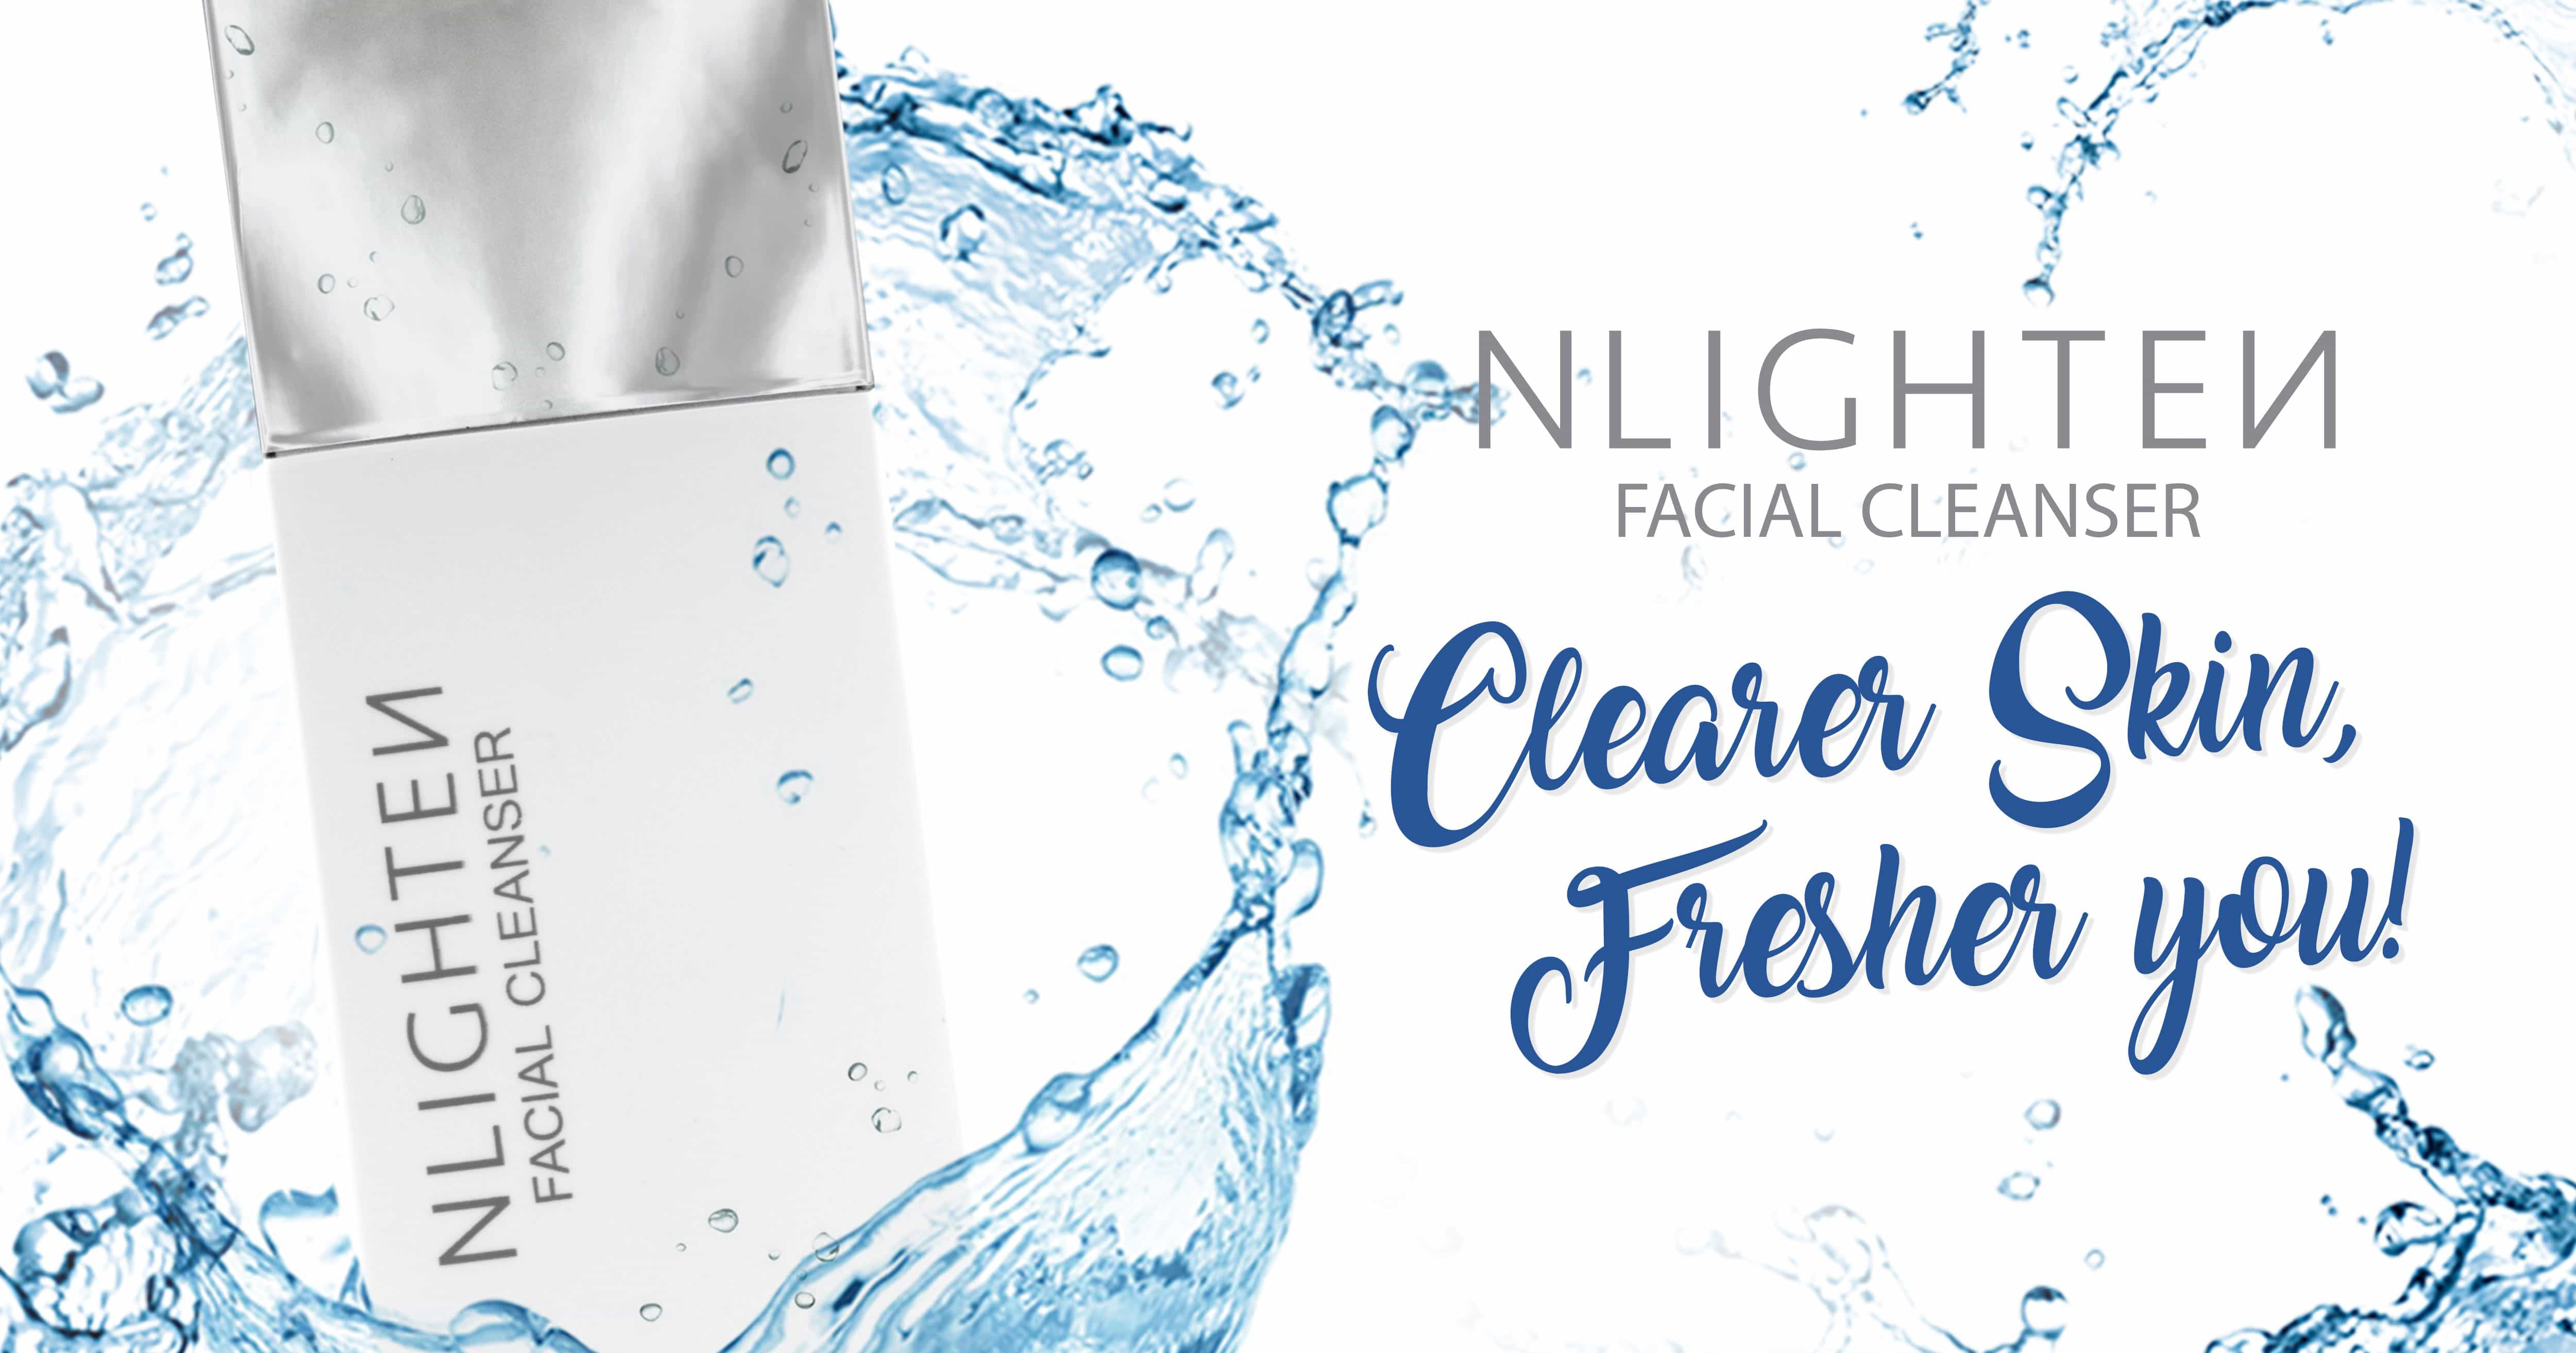 Clearer Skin, Fresher You!